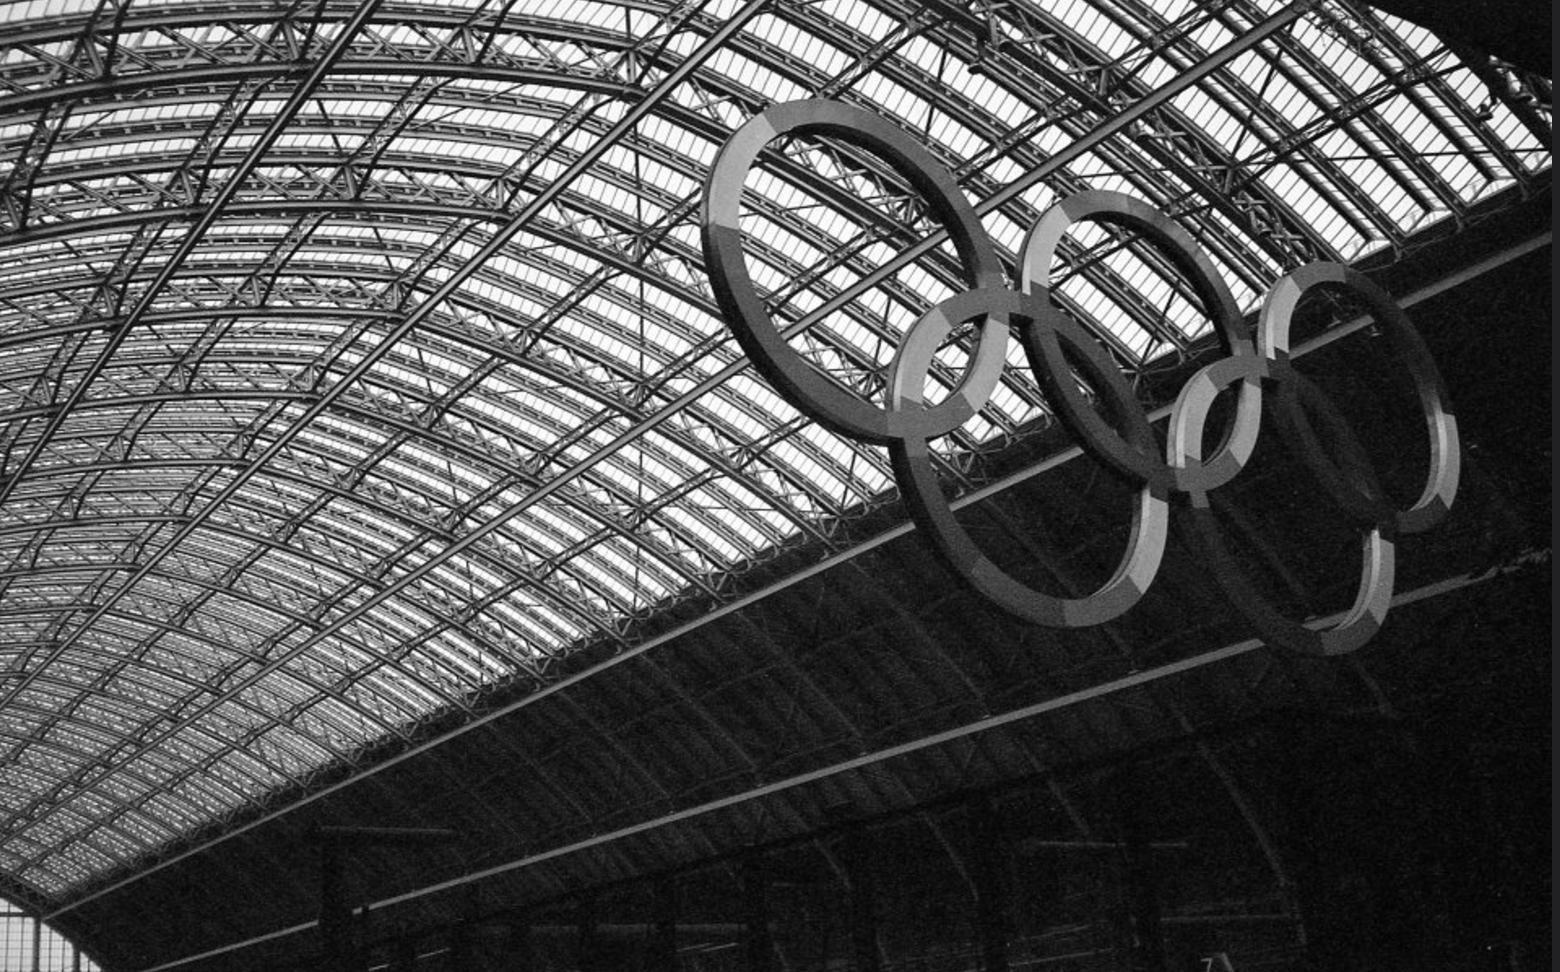 Unity and celebration for the London Olympics, King's Cross St Pancras Station, London, England. (July 20th 2012) //  Minolta Hi-matic AF2, Ilford XP2 400, Epson V330. // The only time of year when the British public spoke to one another on public transport, the 2016 Olympics.